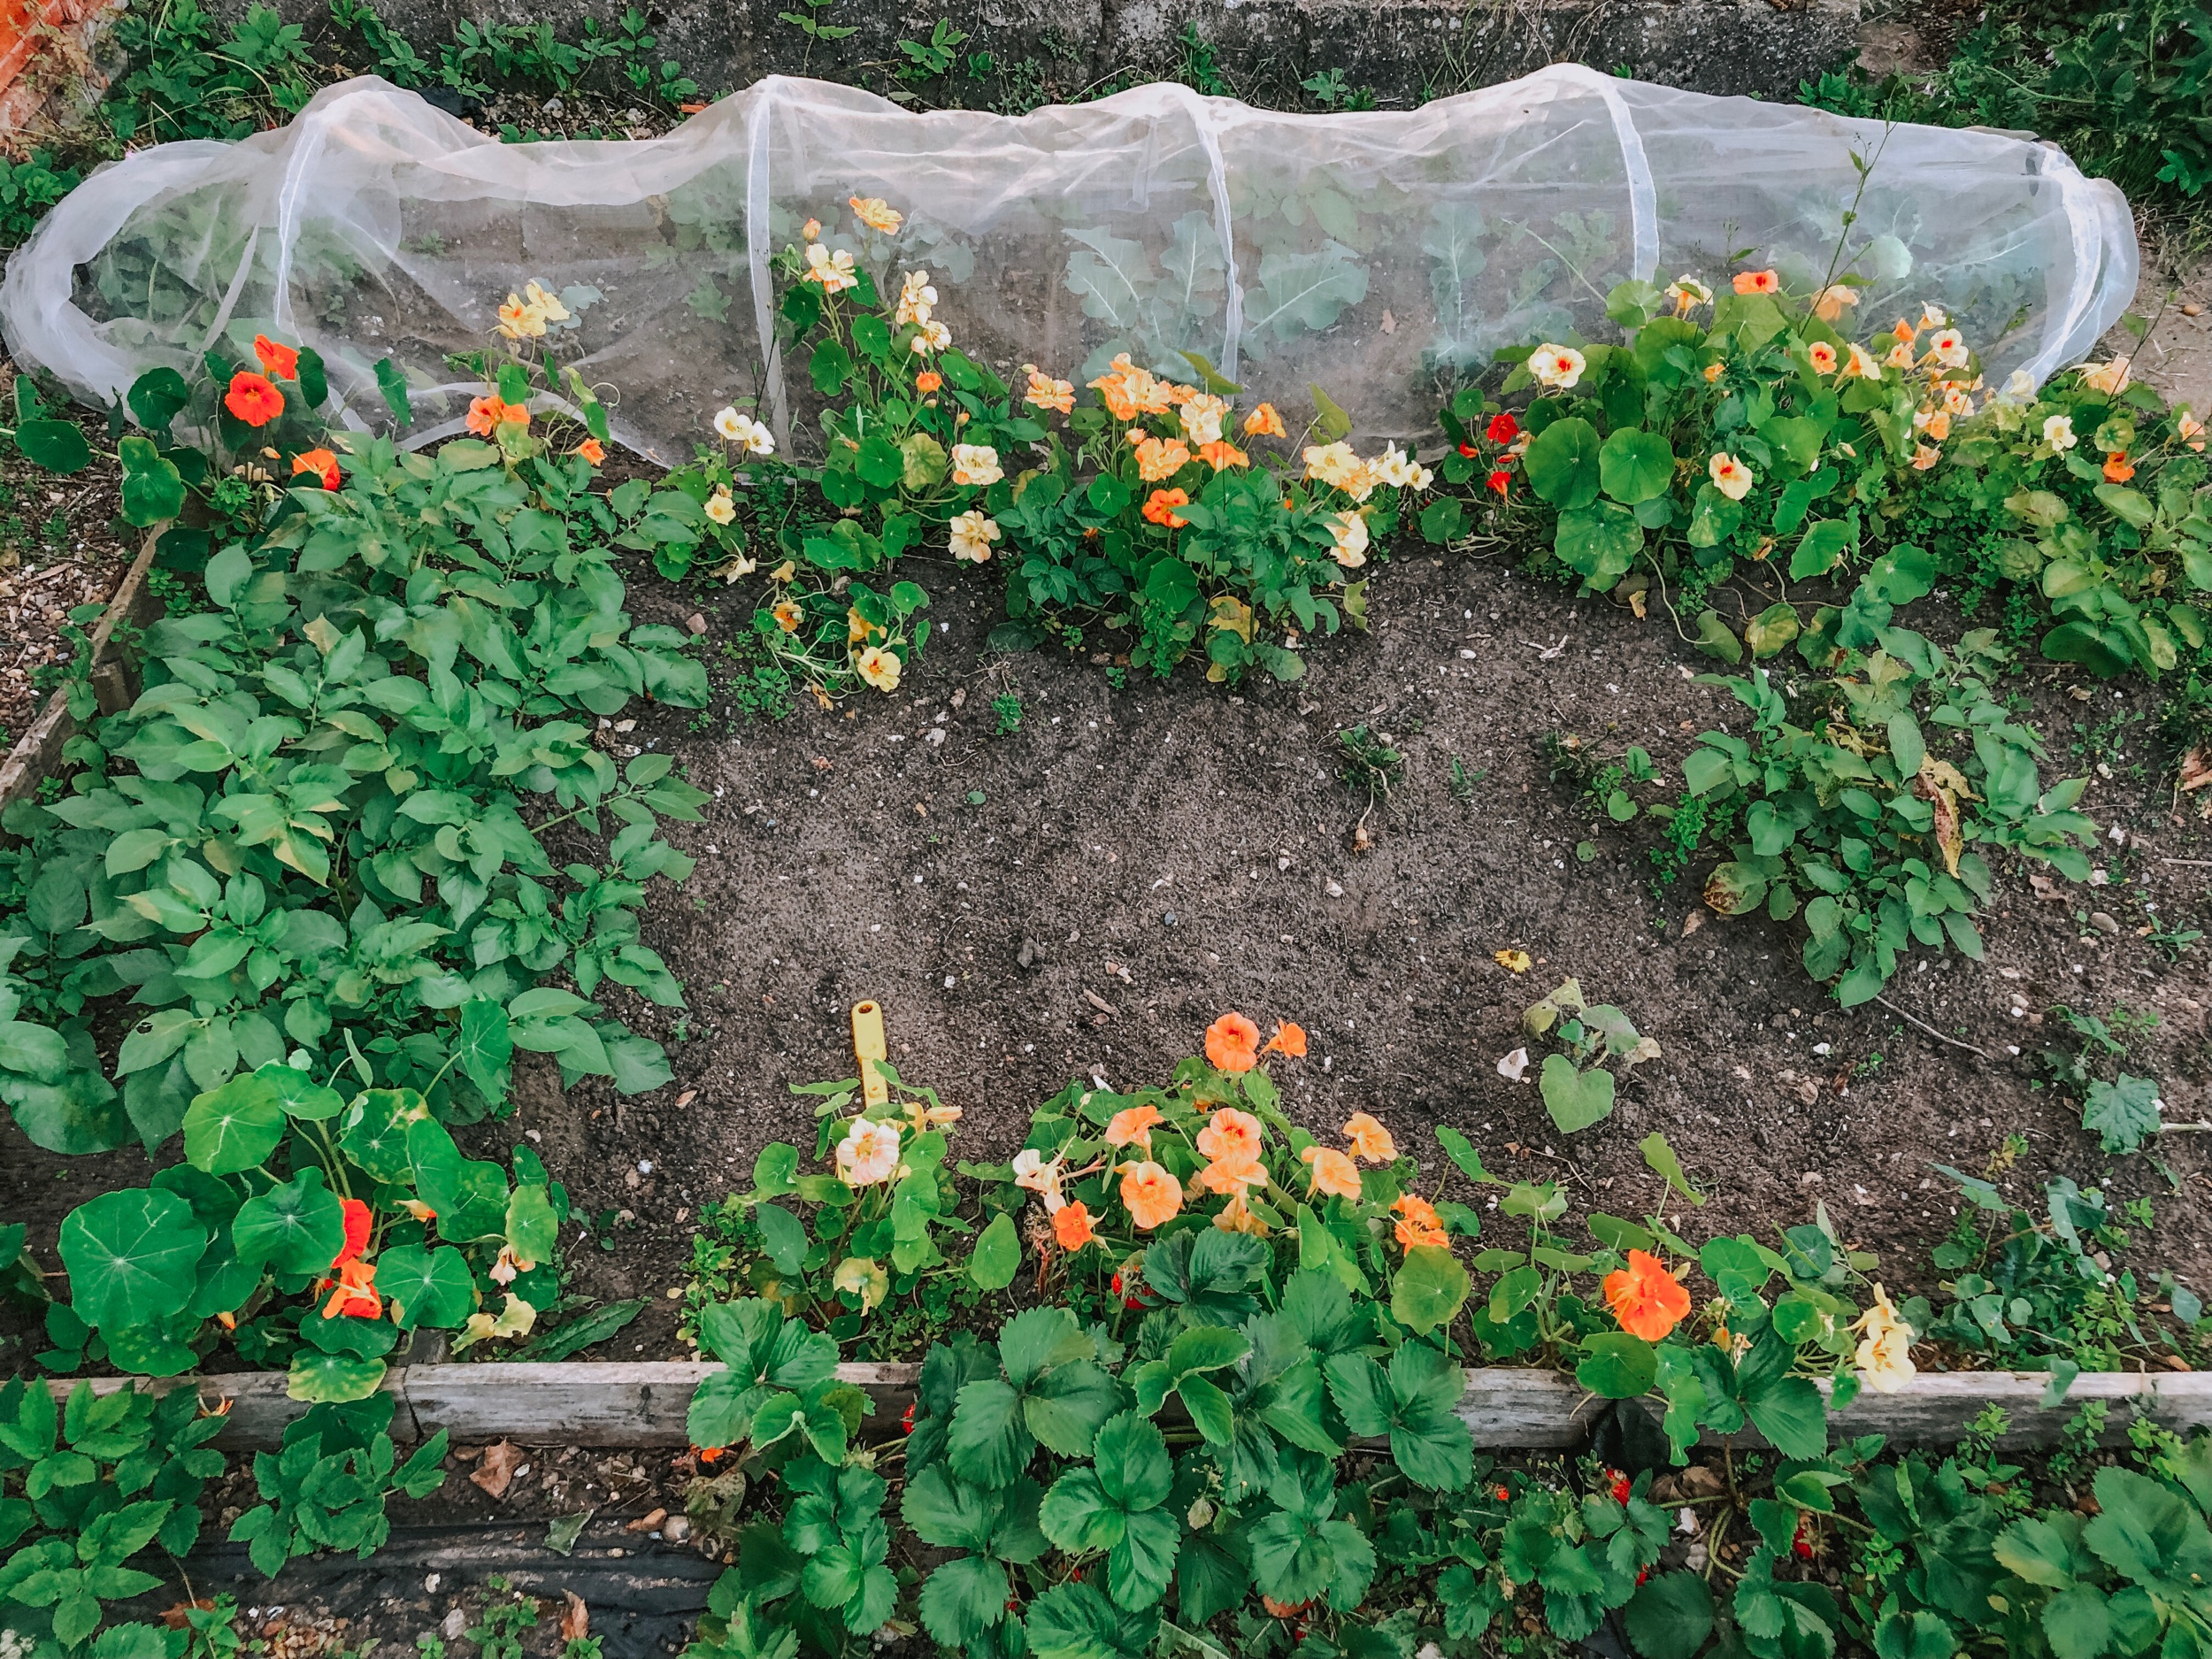 Nasturtiums - I've planted them between broccoli and potato plants in my garden.